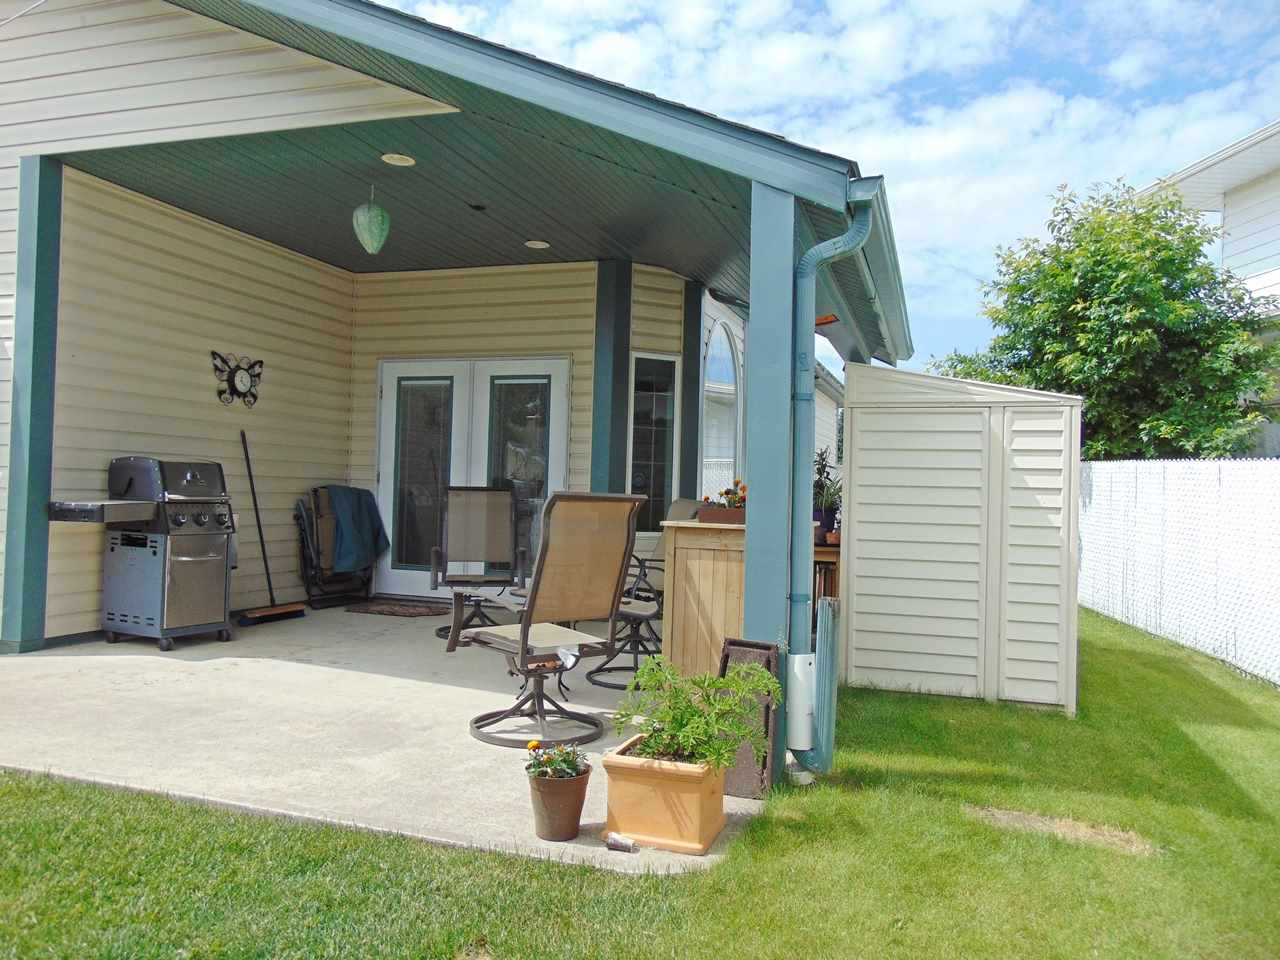 Photo 25: 5159 49 Street: Redwater House for sale : MLS(r) # E4069270